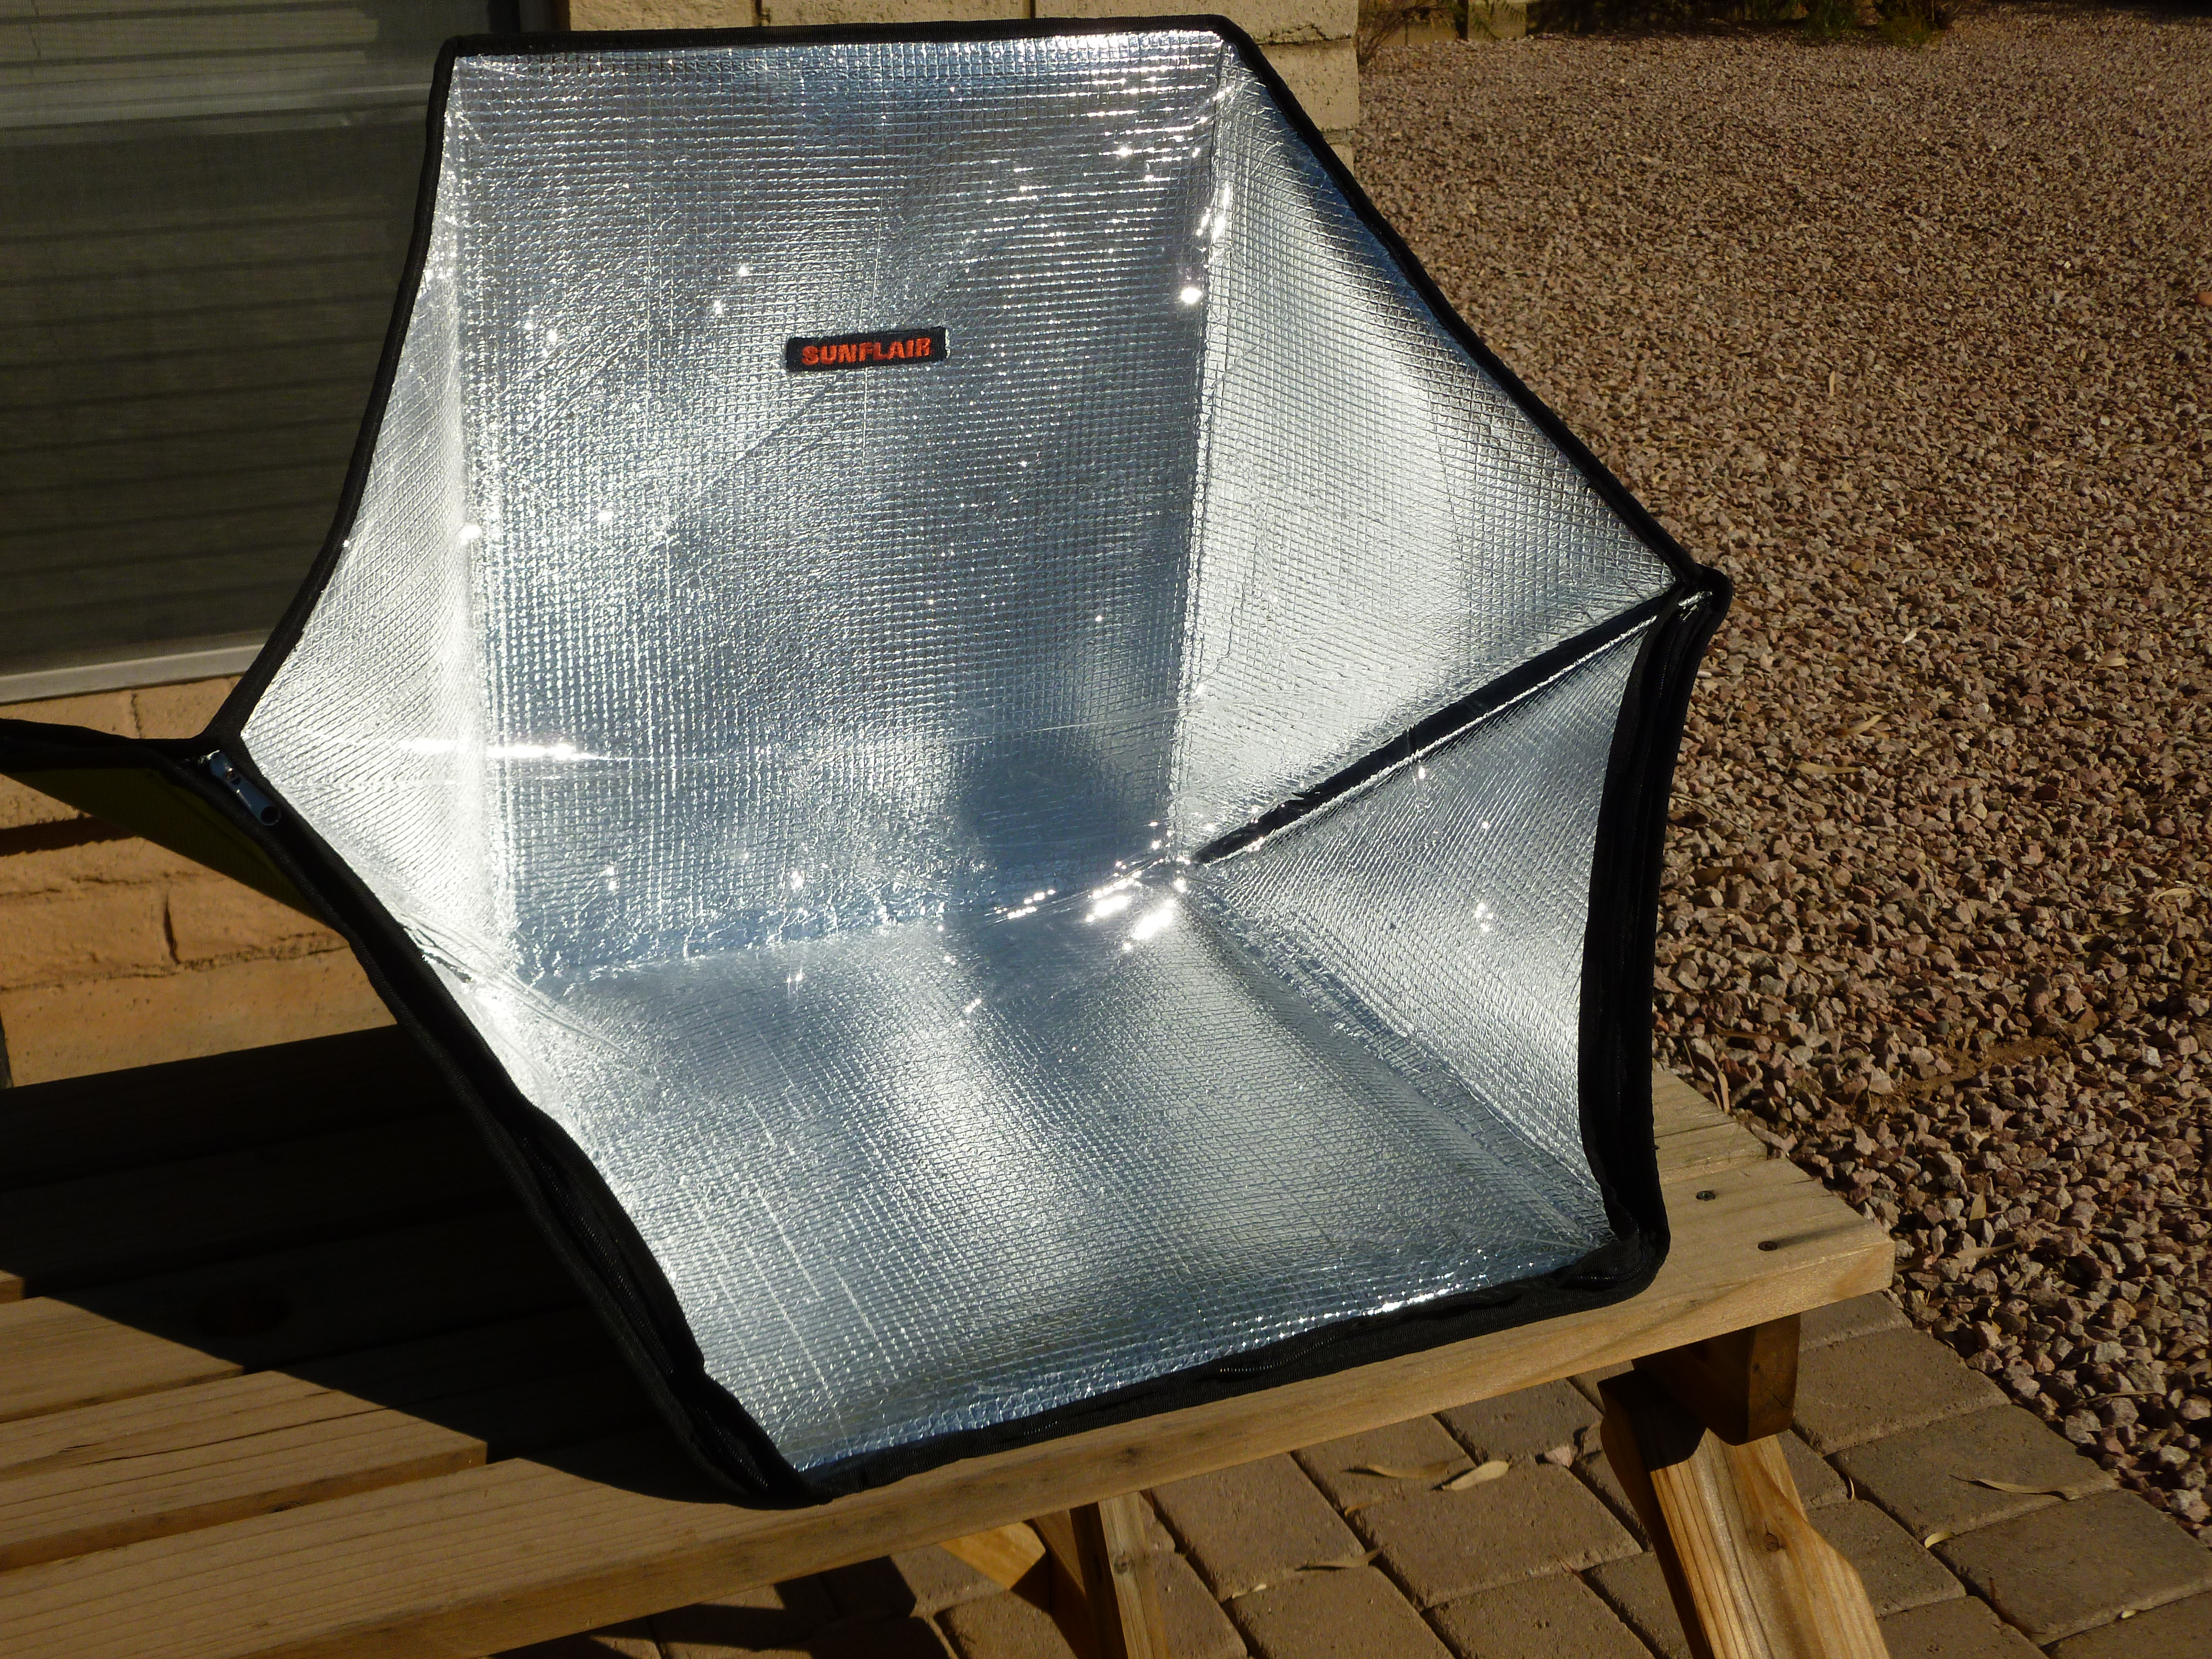 Sunflair Solar Oven Review Part One